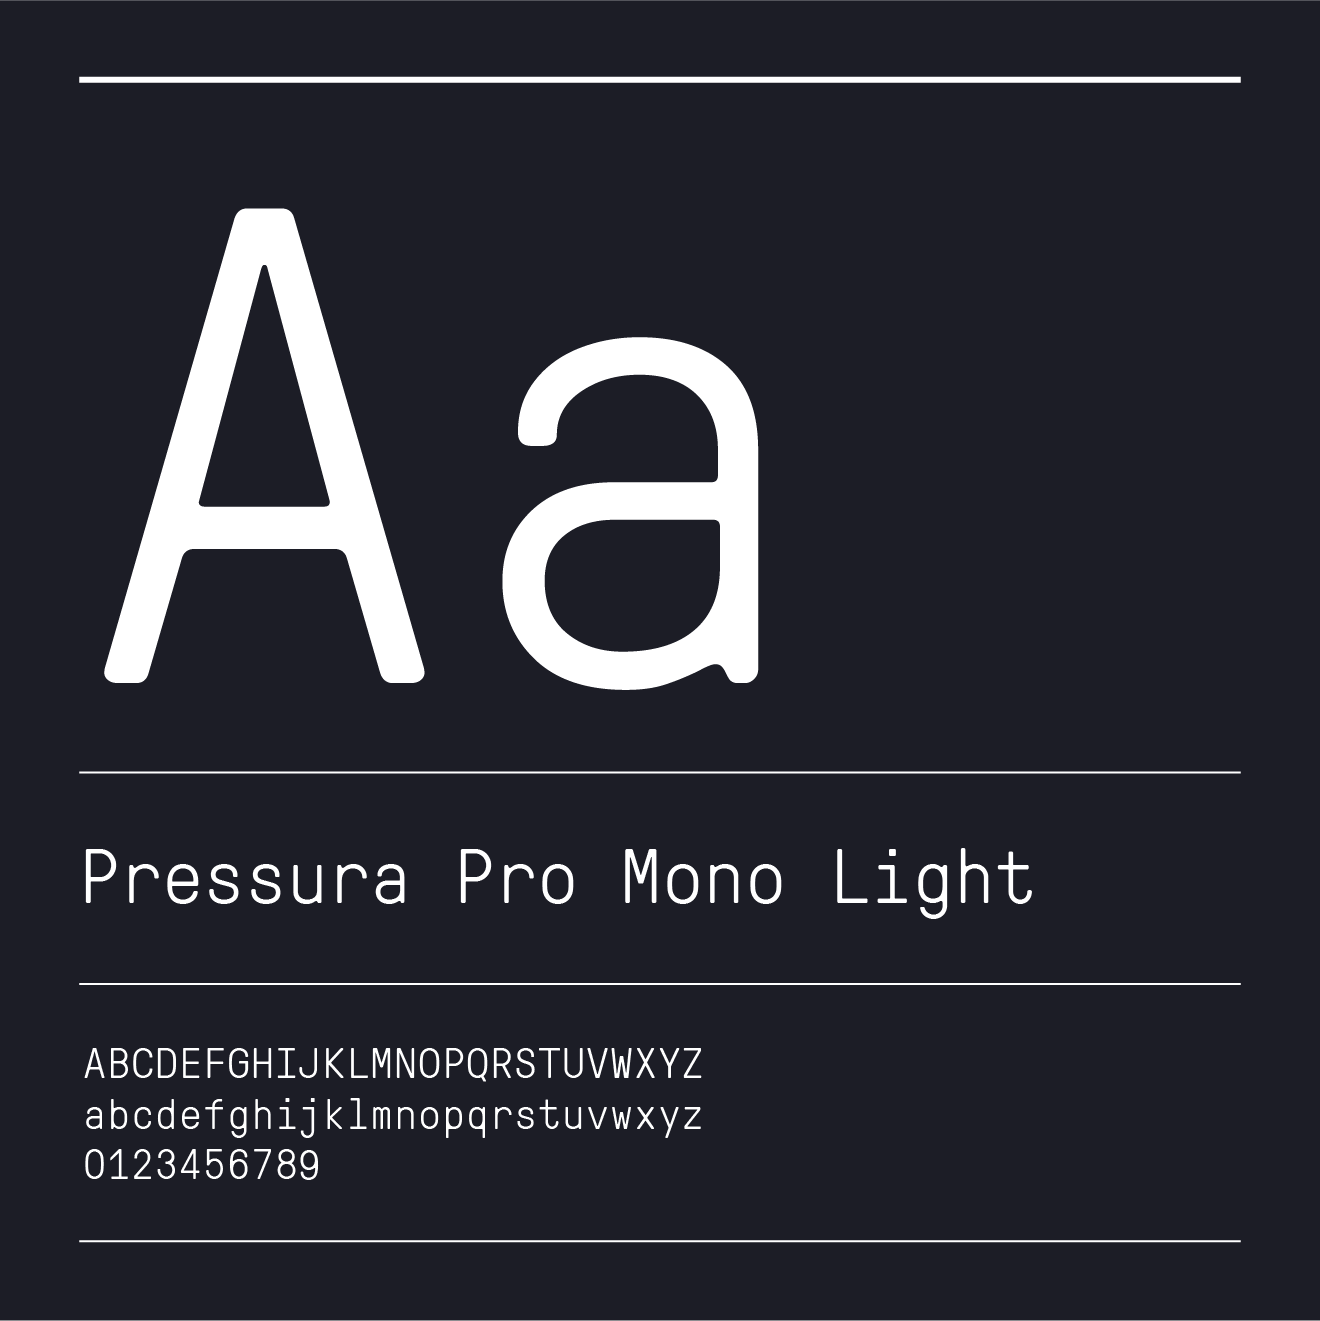 White text of the letter A over a black background in Pressura Pro Mono Light font